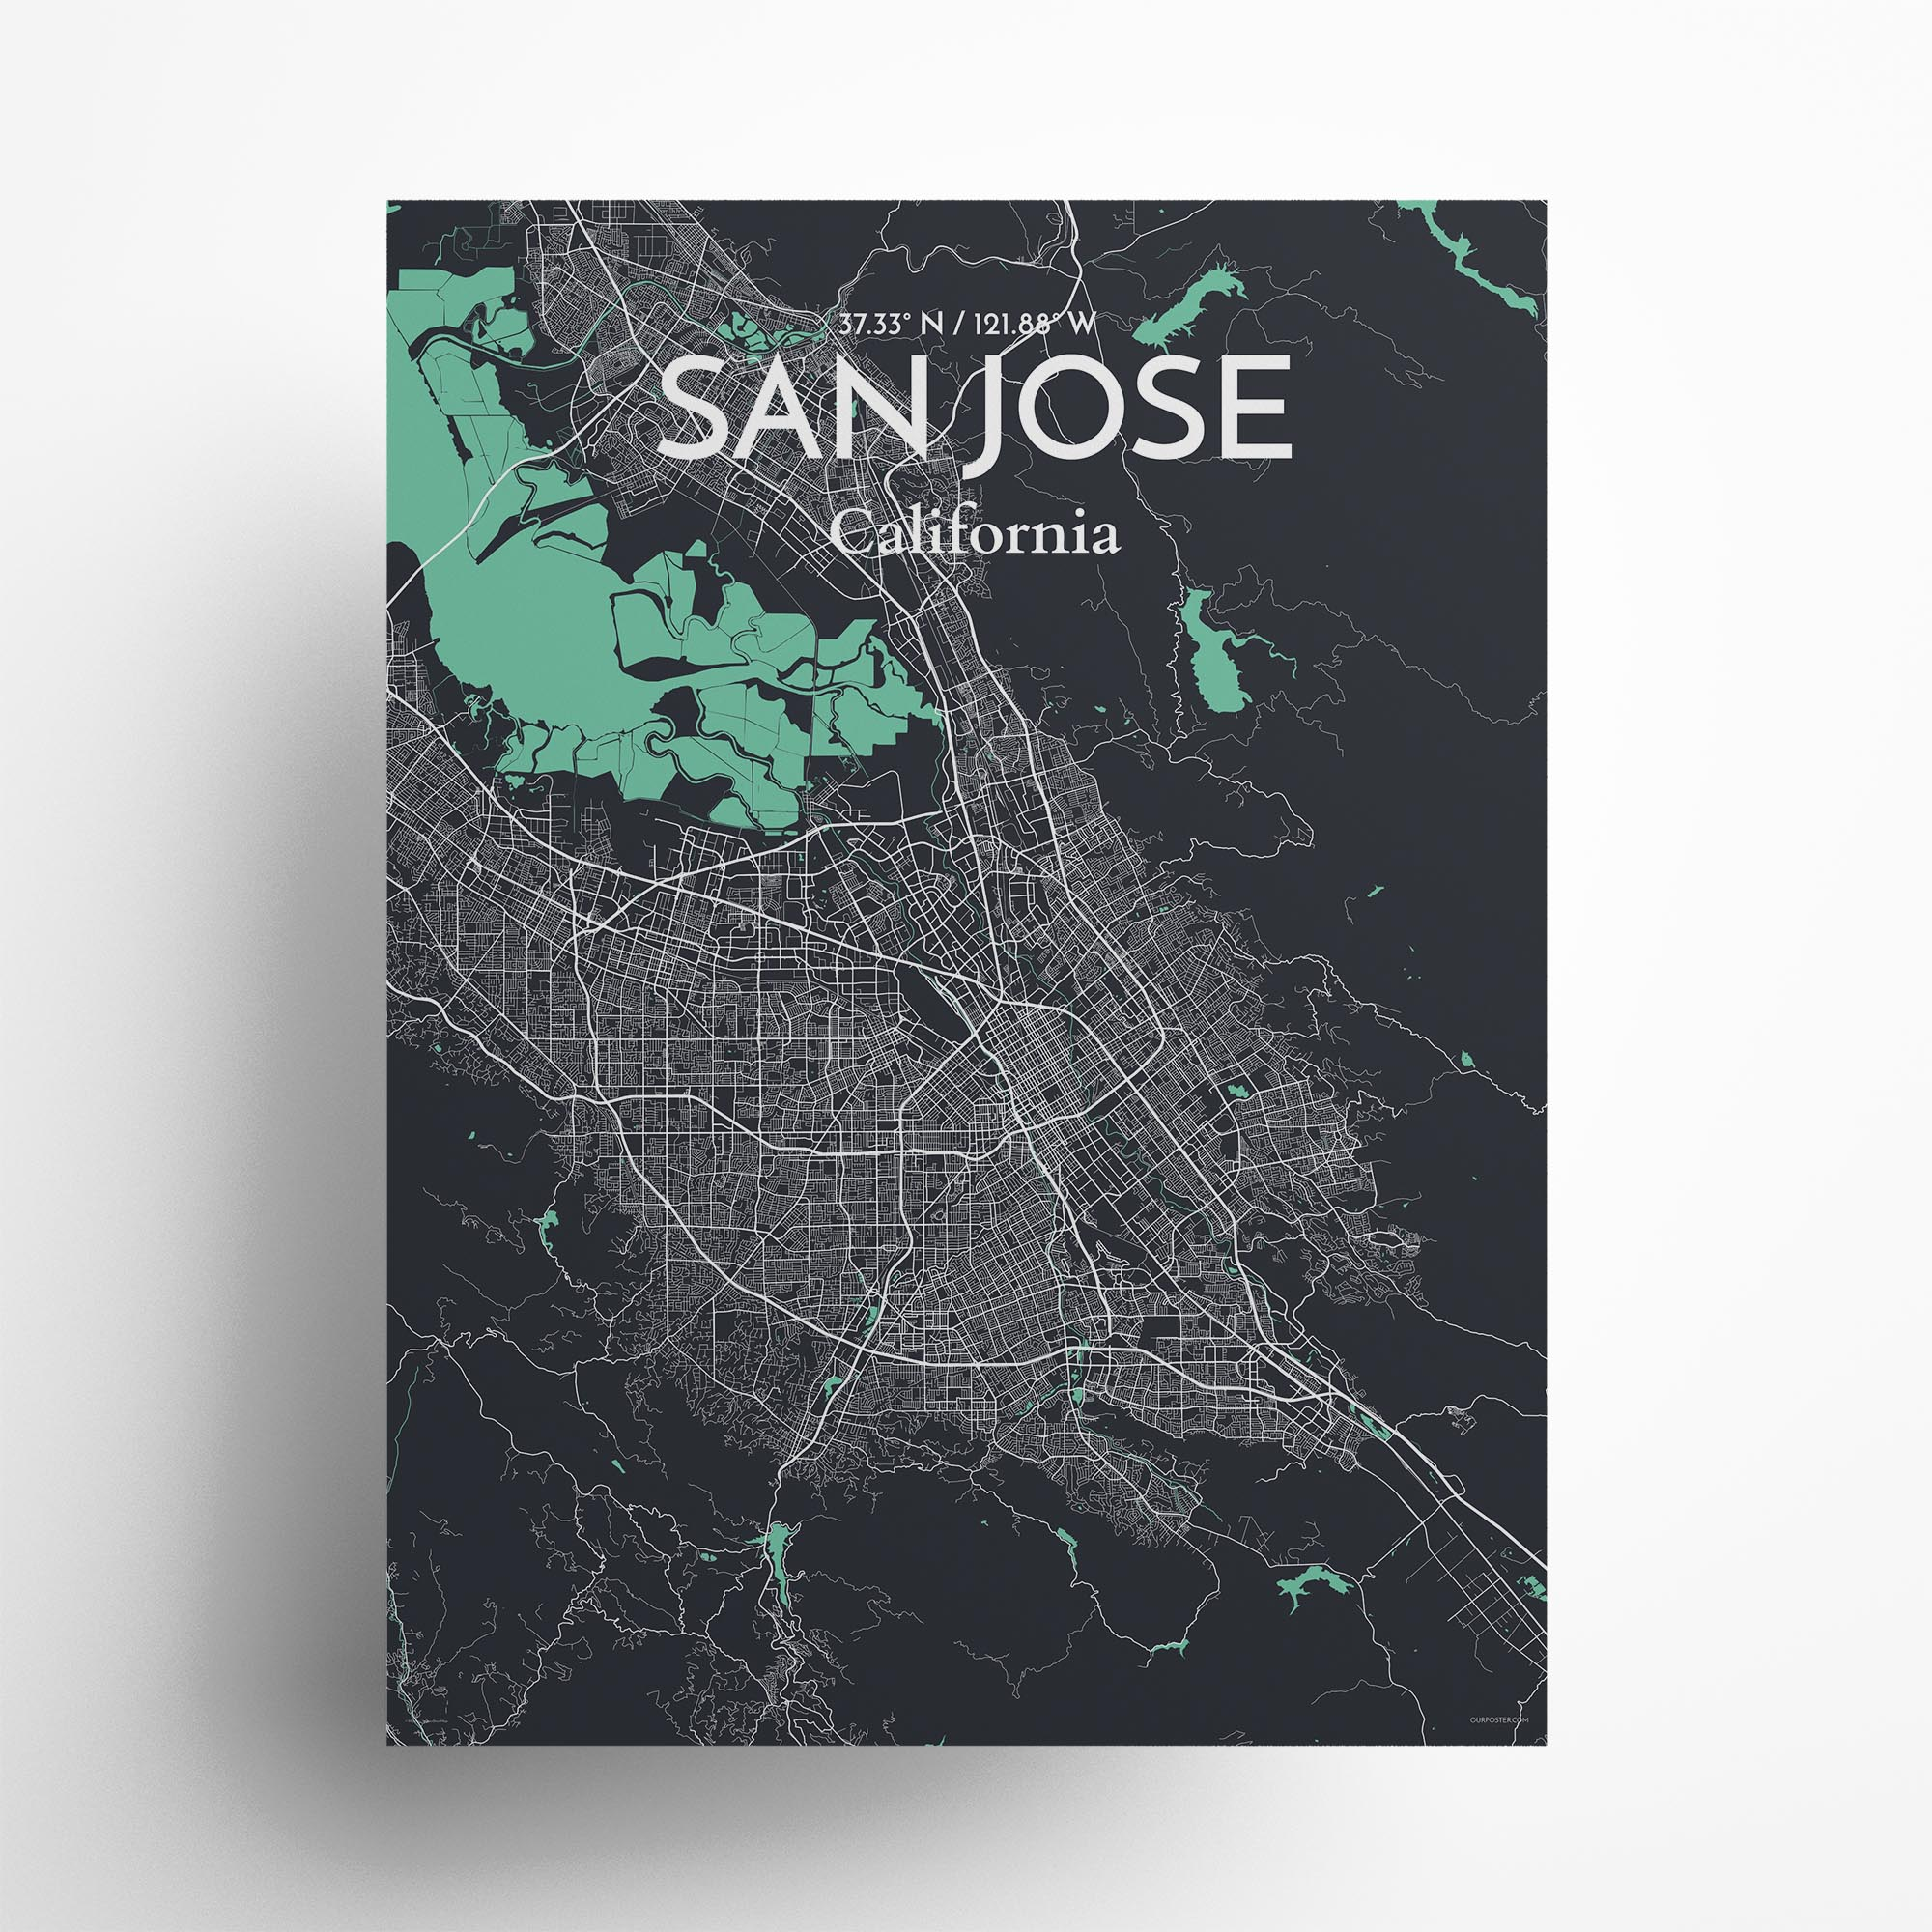 "San Jose city map poster in Dream of size 18"" x 24"""